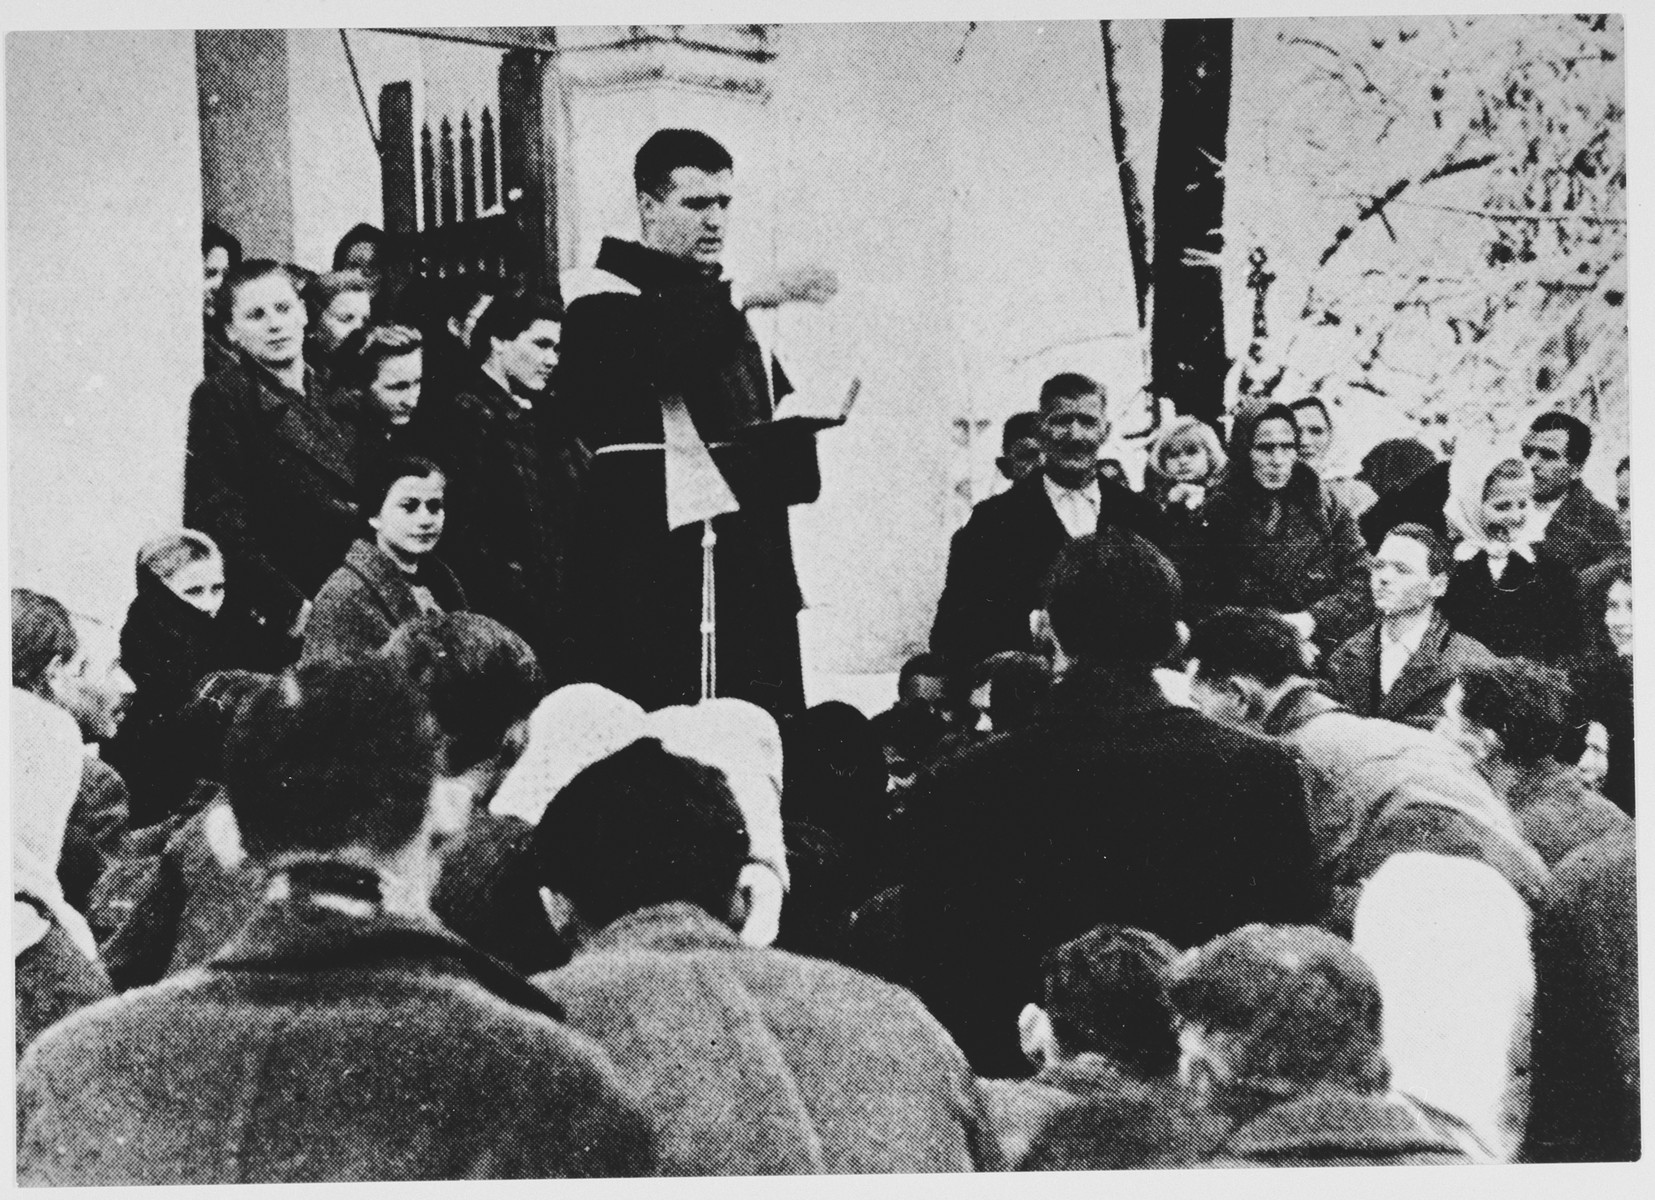 Serbian civilians are forcibly converted to Catholicism by a Croatian priest.